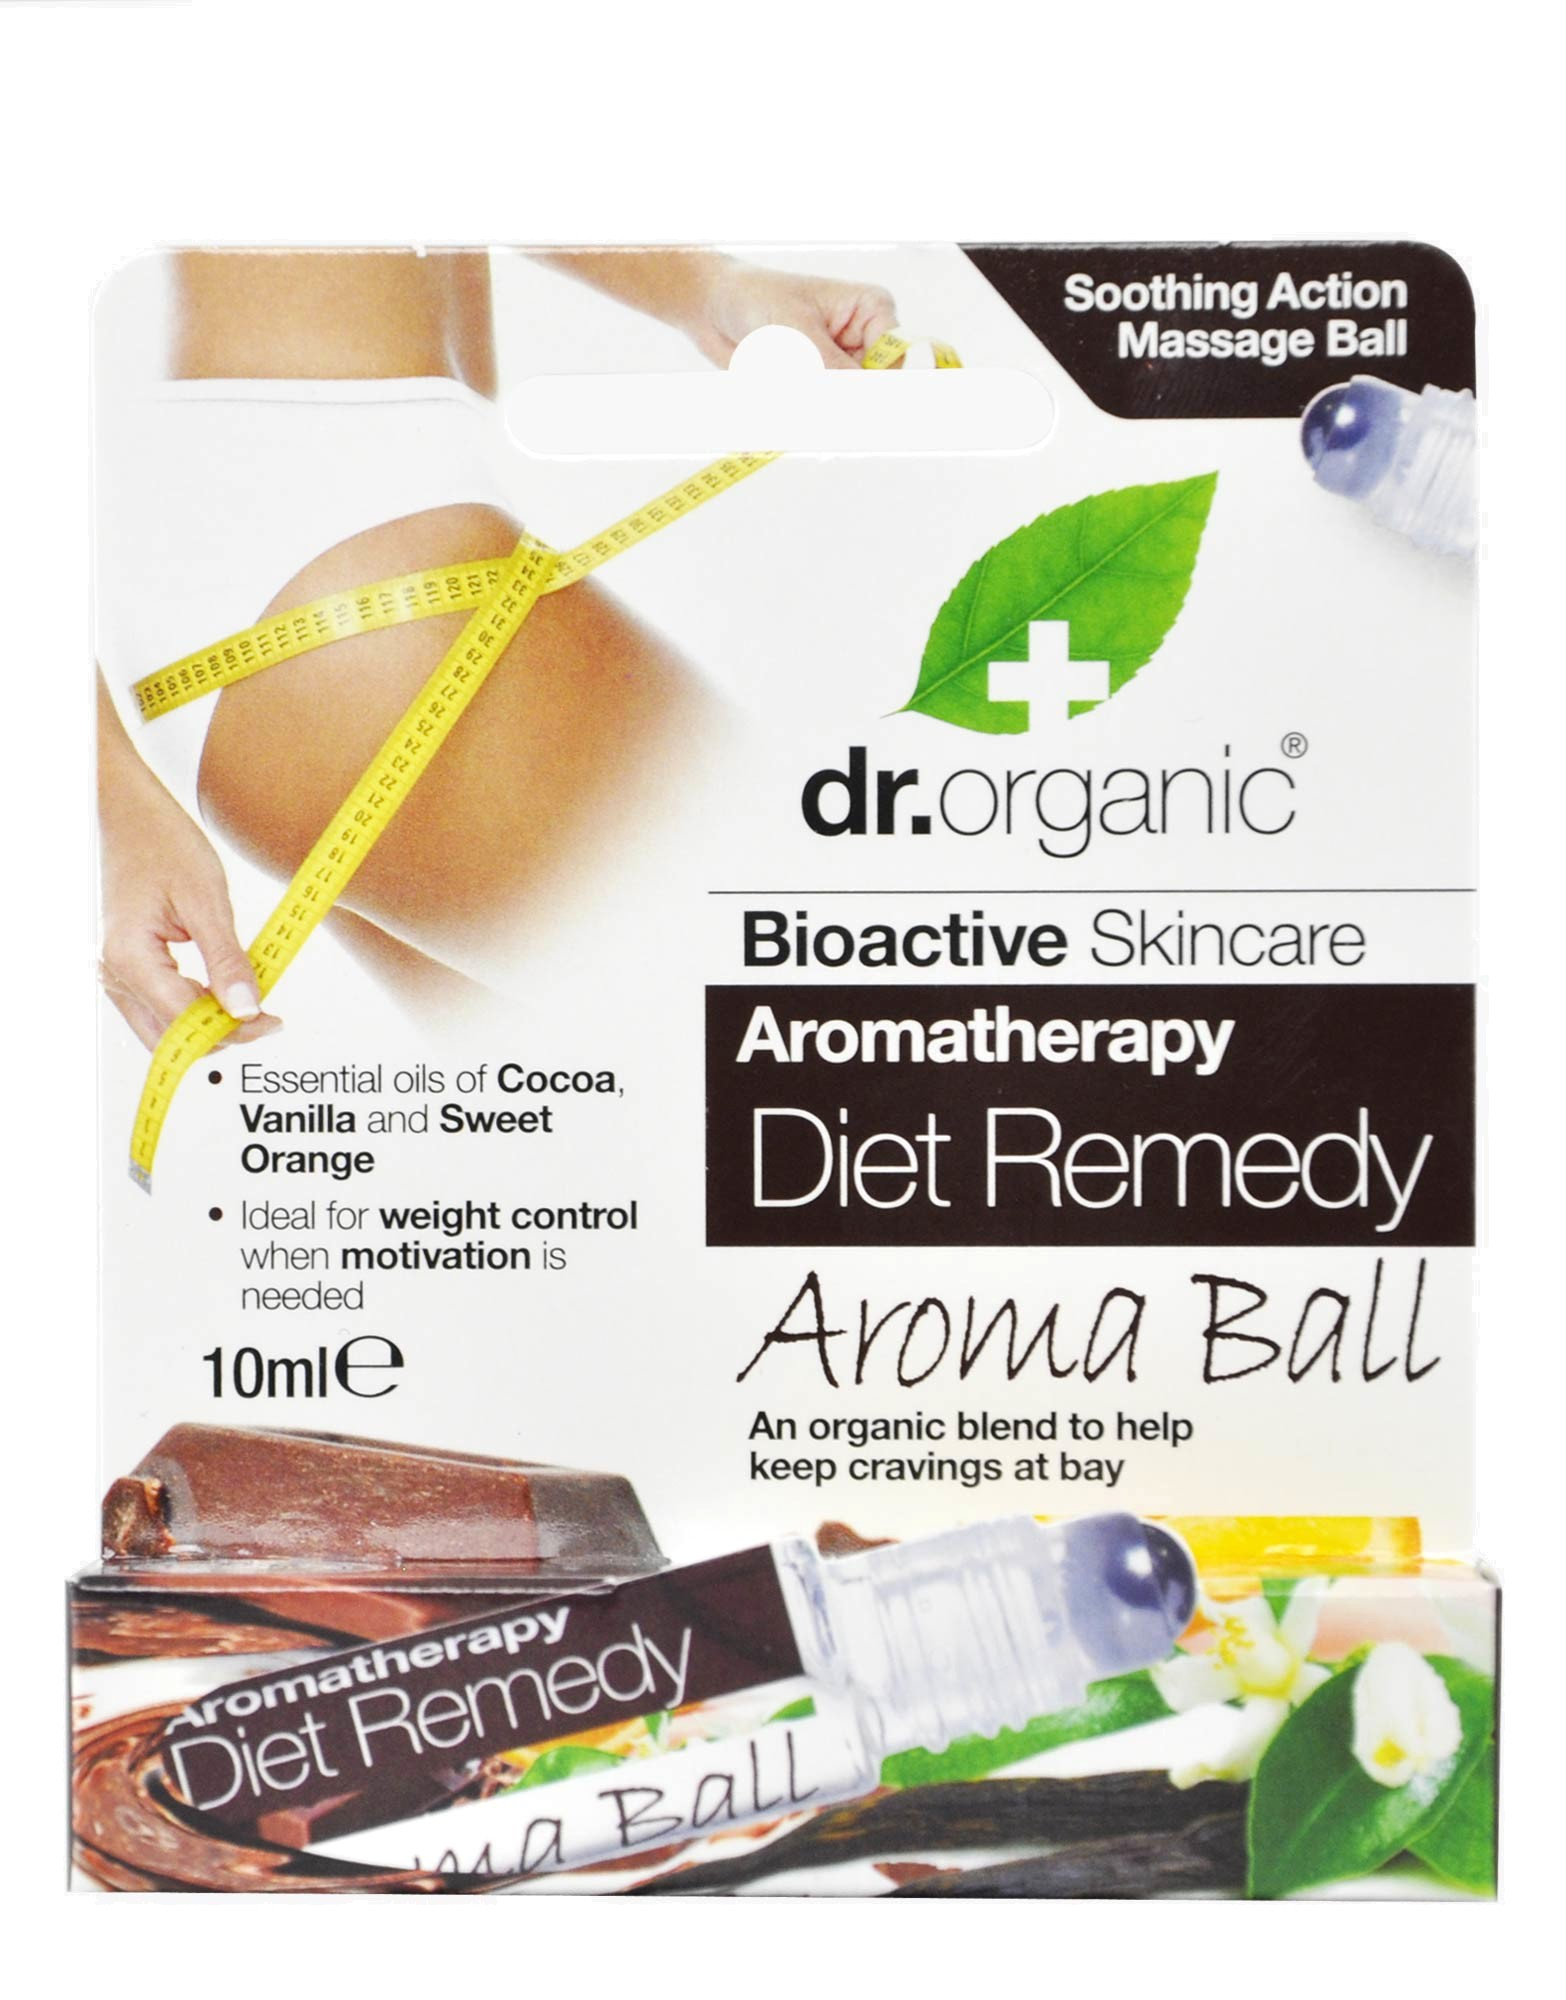 Aromatherapy for Weight Loss|Essential Oils for Aromatherapy Weight Loss